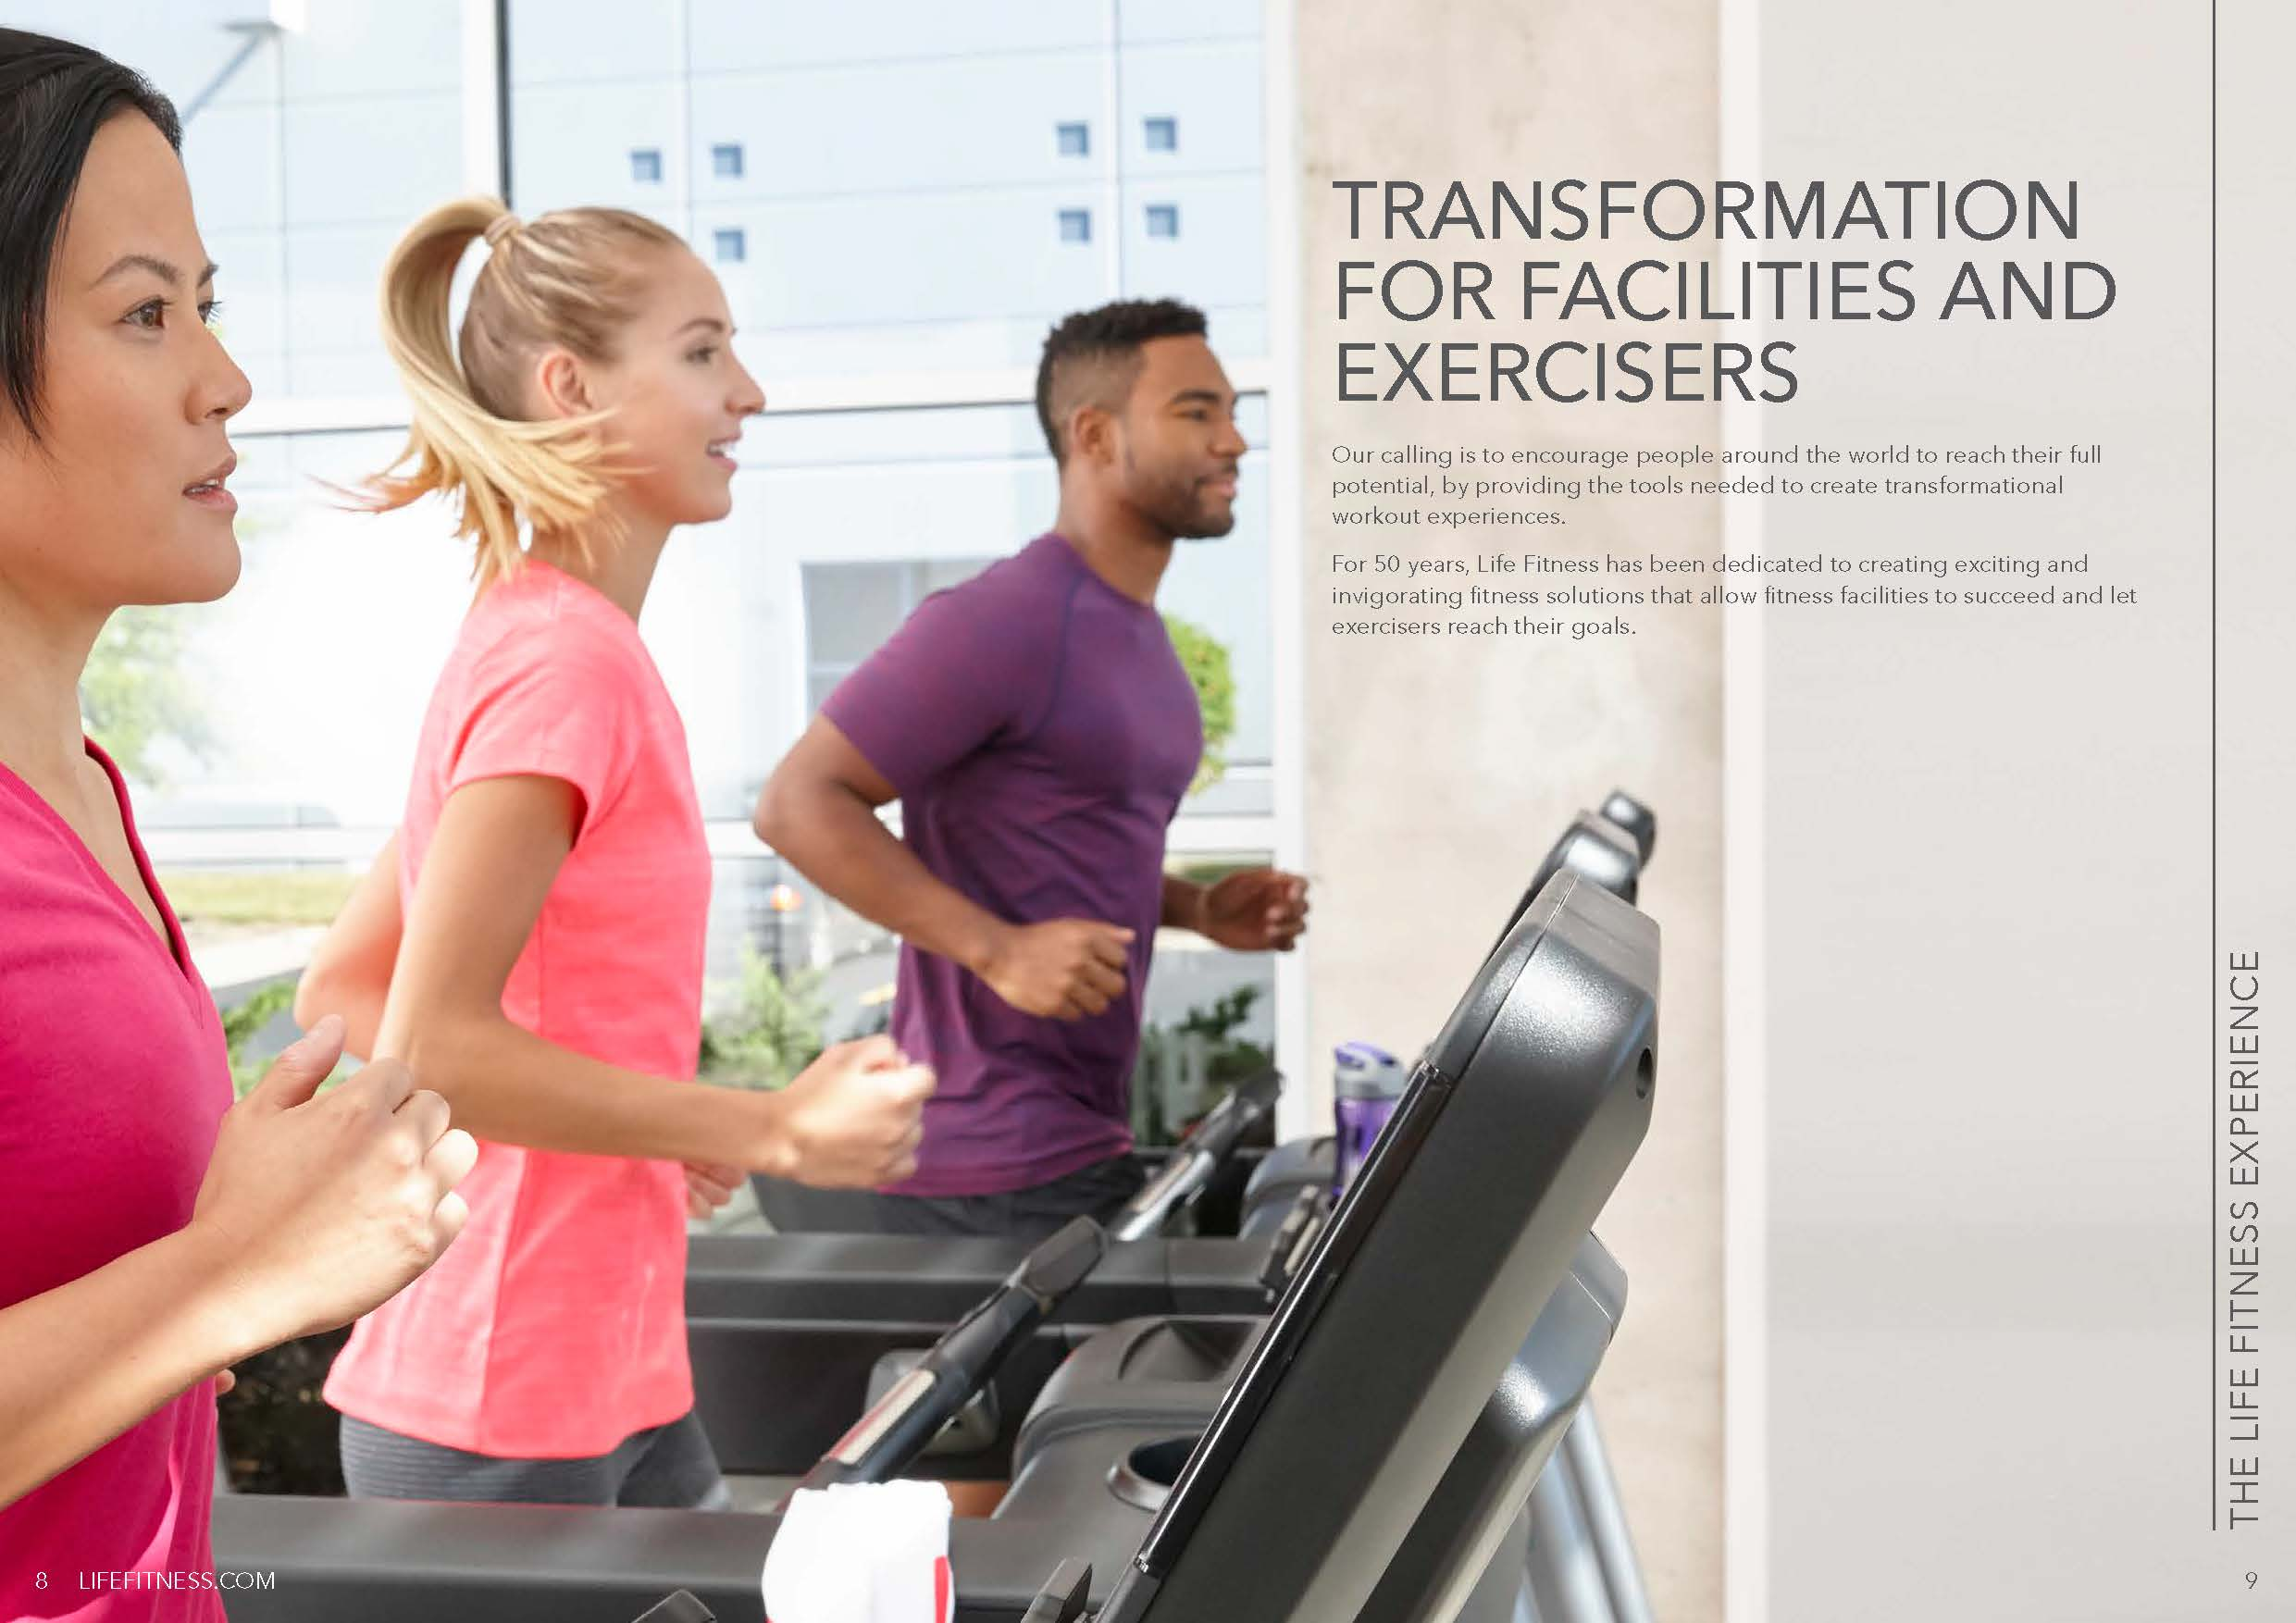 GM-043-2017-LifeFitness-Commercial-Catalog-ASBU-vf_Page_05